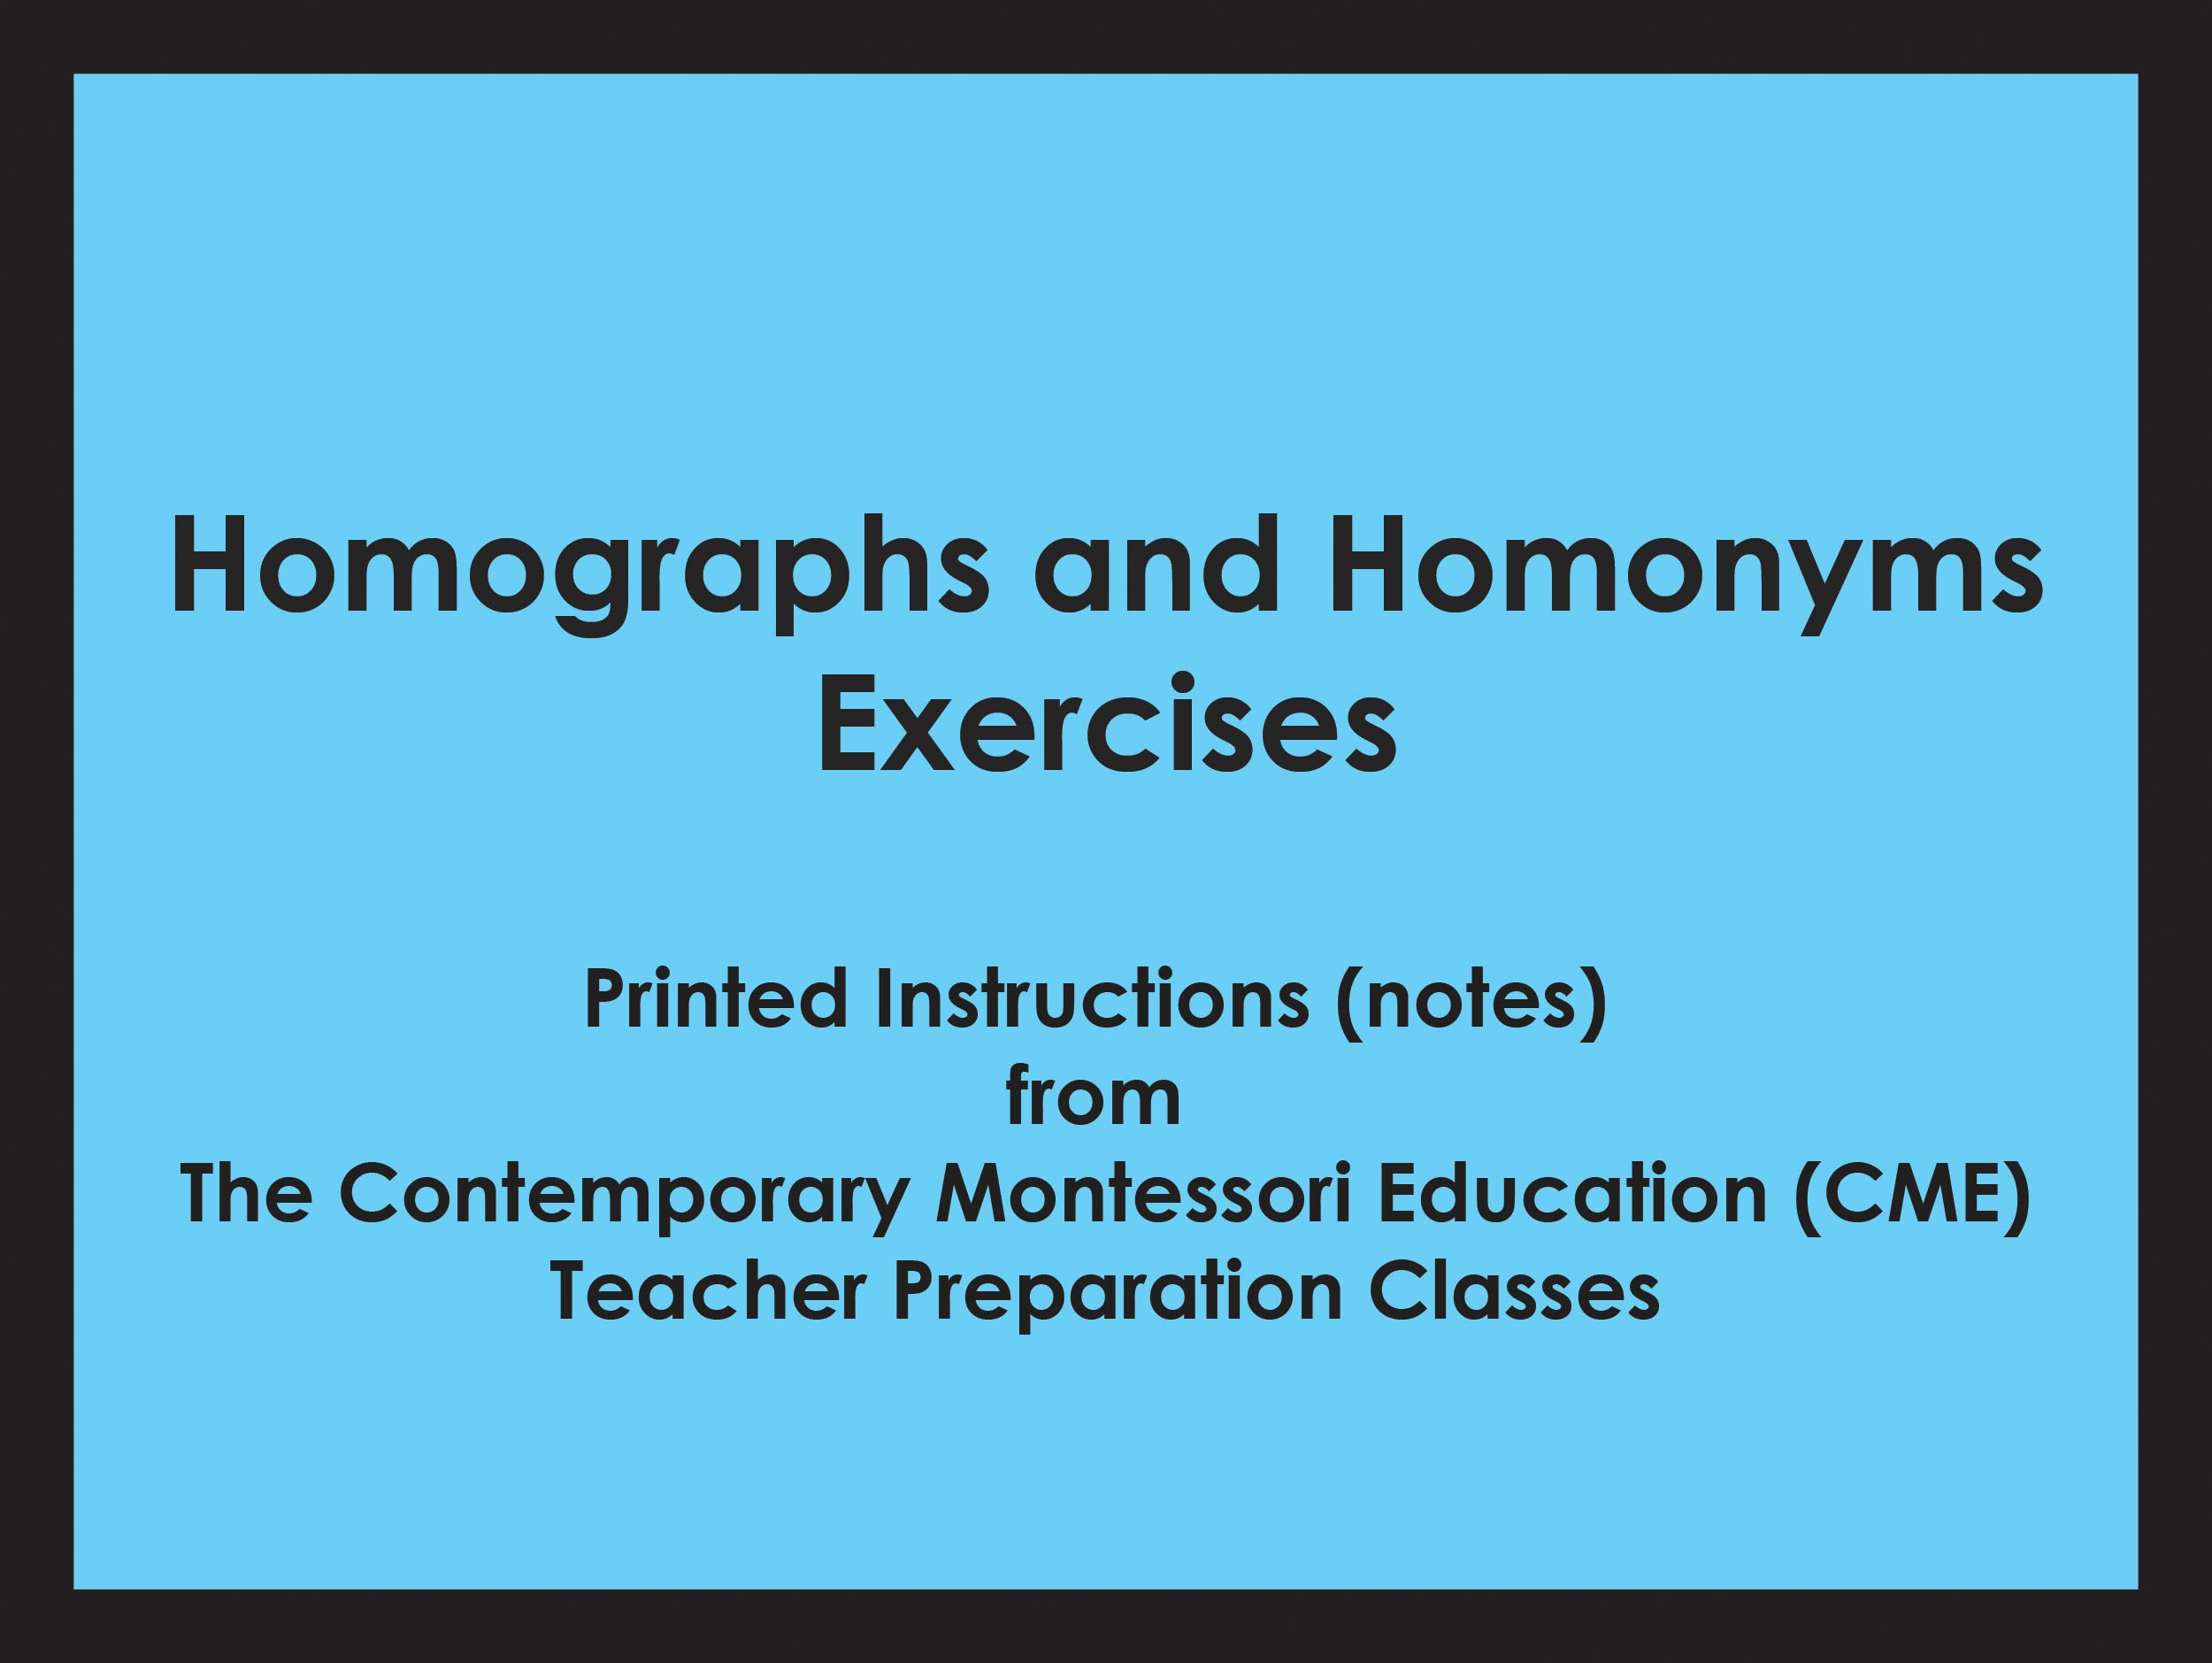 Homographs and Homonyms Exercises (CME notes) ● LANG-CME-307